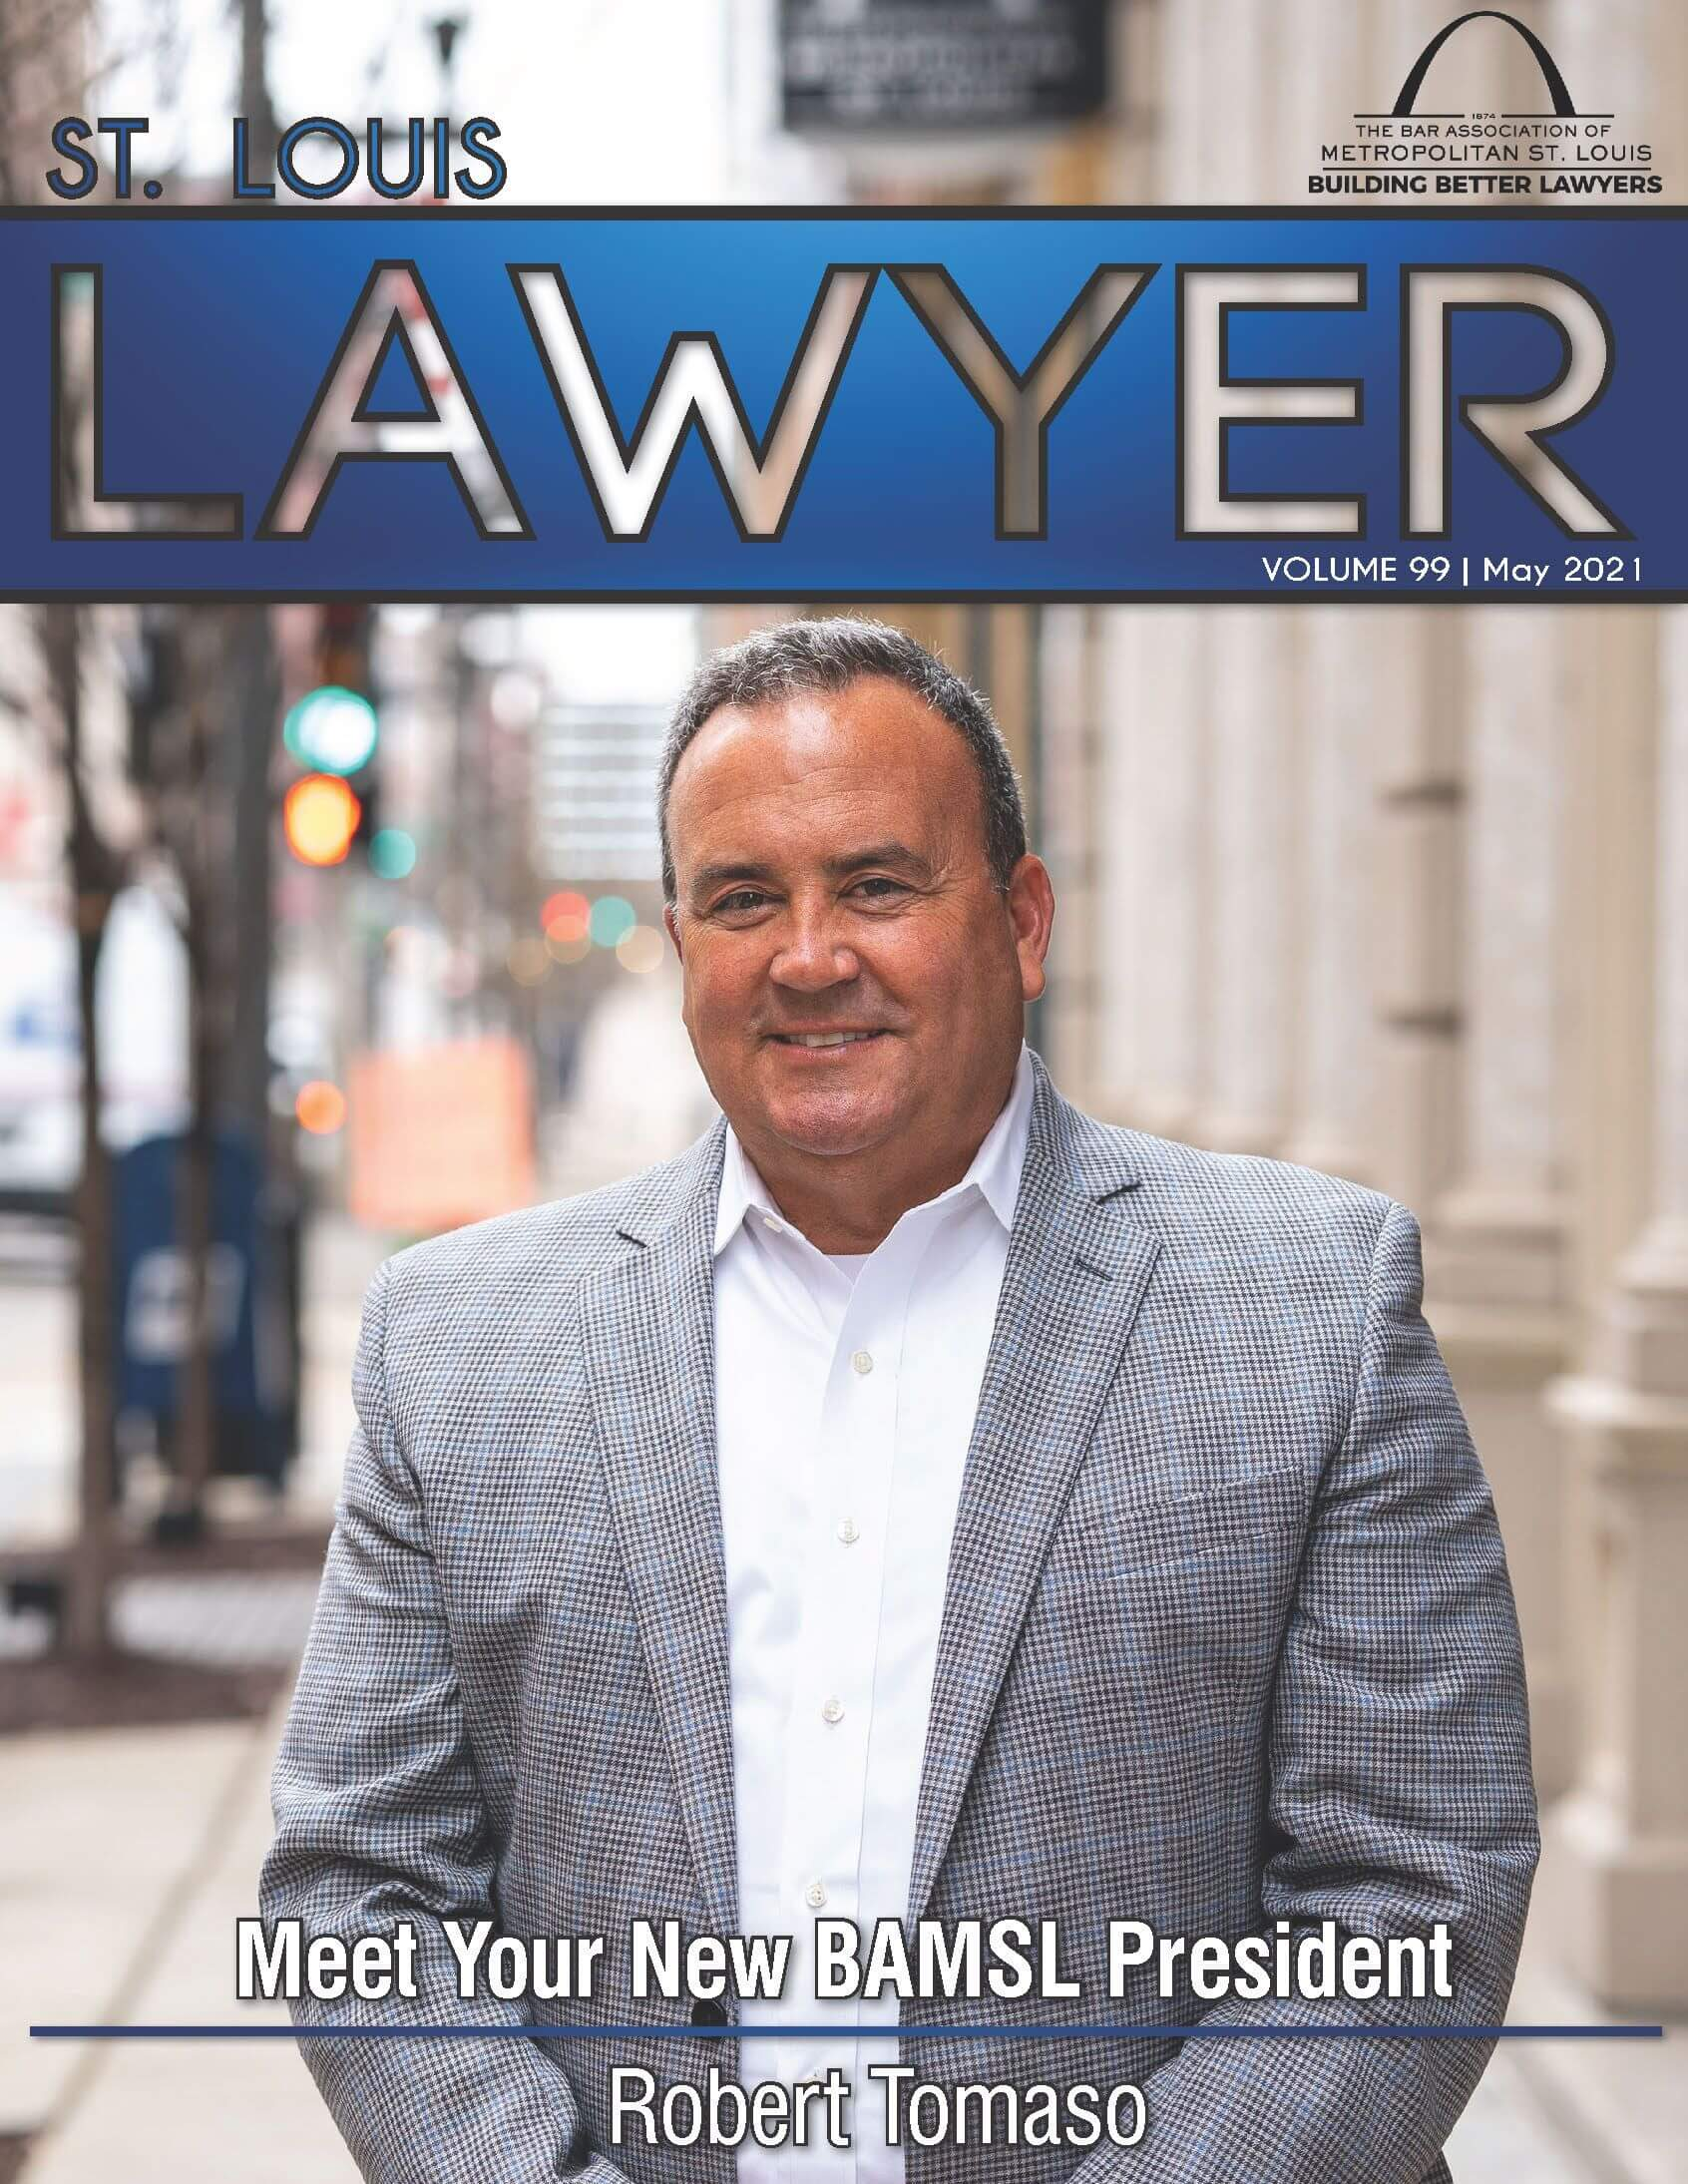 Cover photo of the May 2021 issue of the St. Louis Lawyer magazine